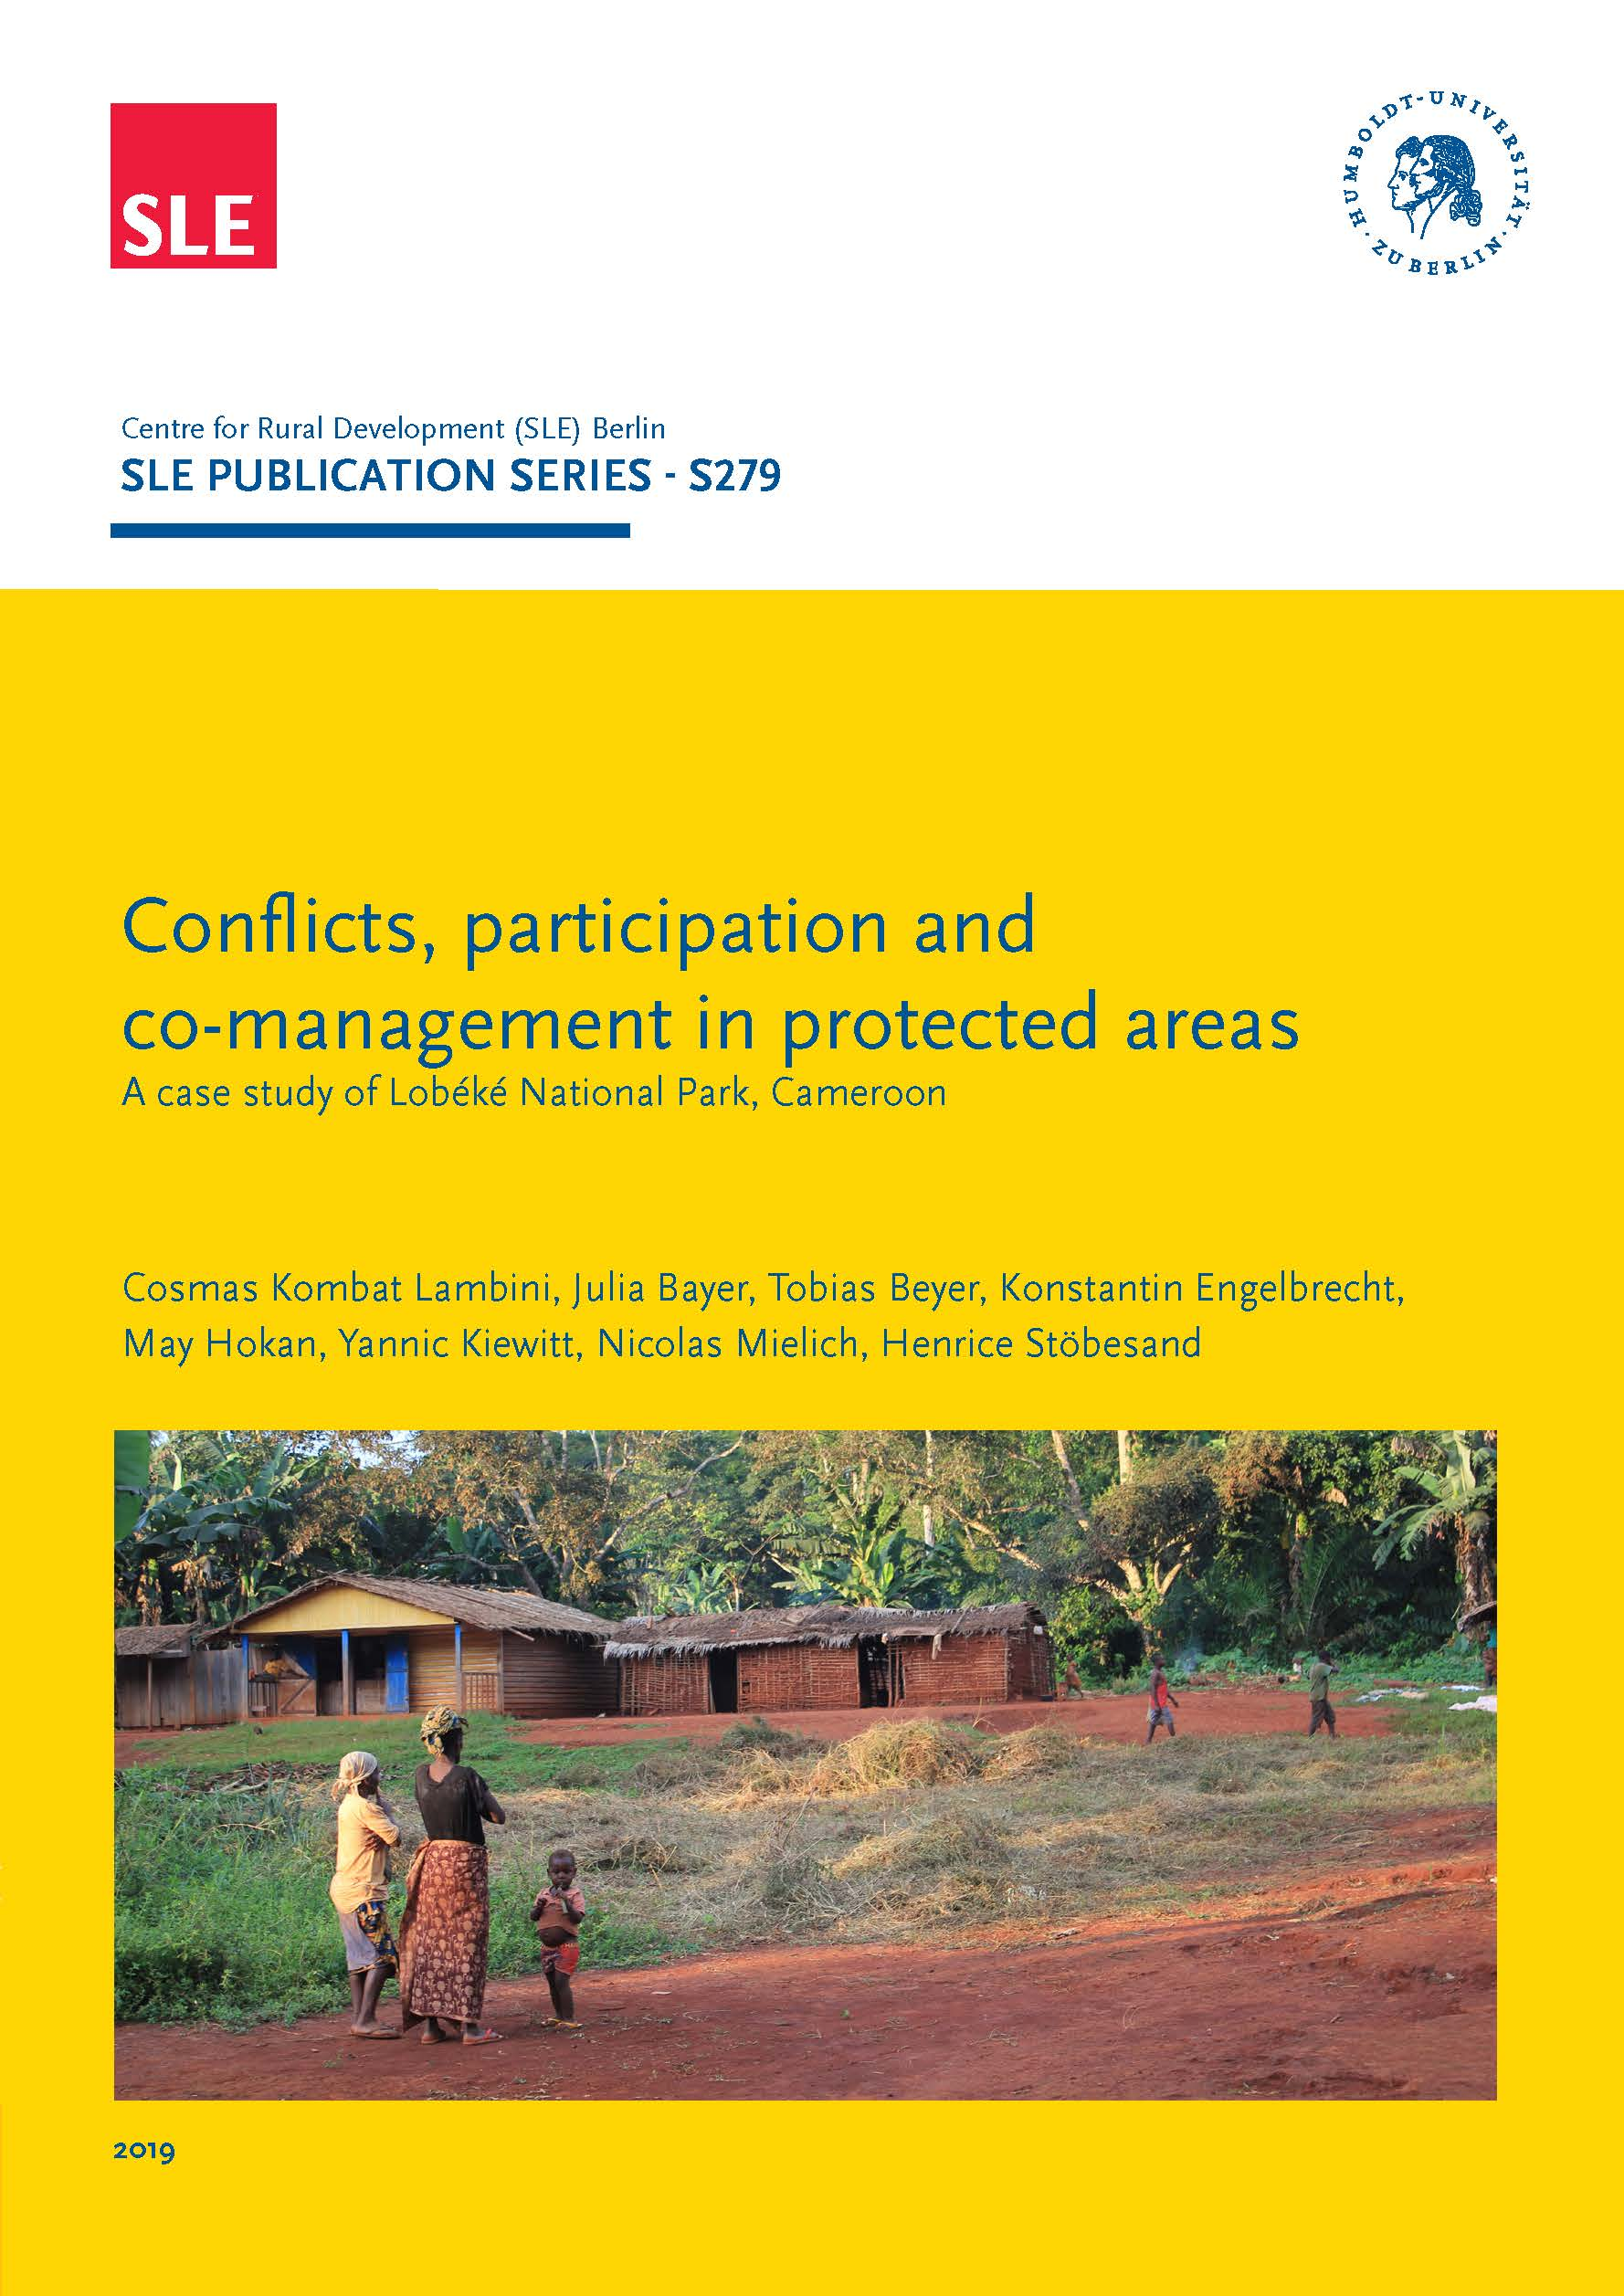 SLE 279 Conflicts participation and co management in protected areas Seite 001